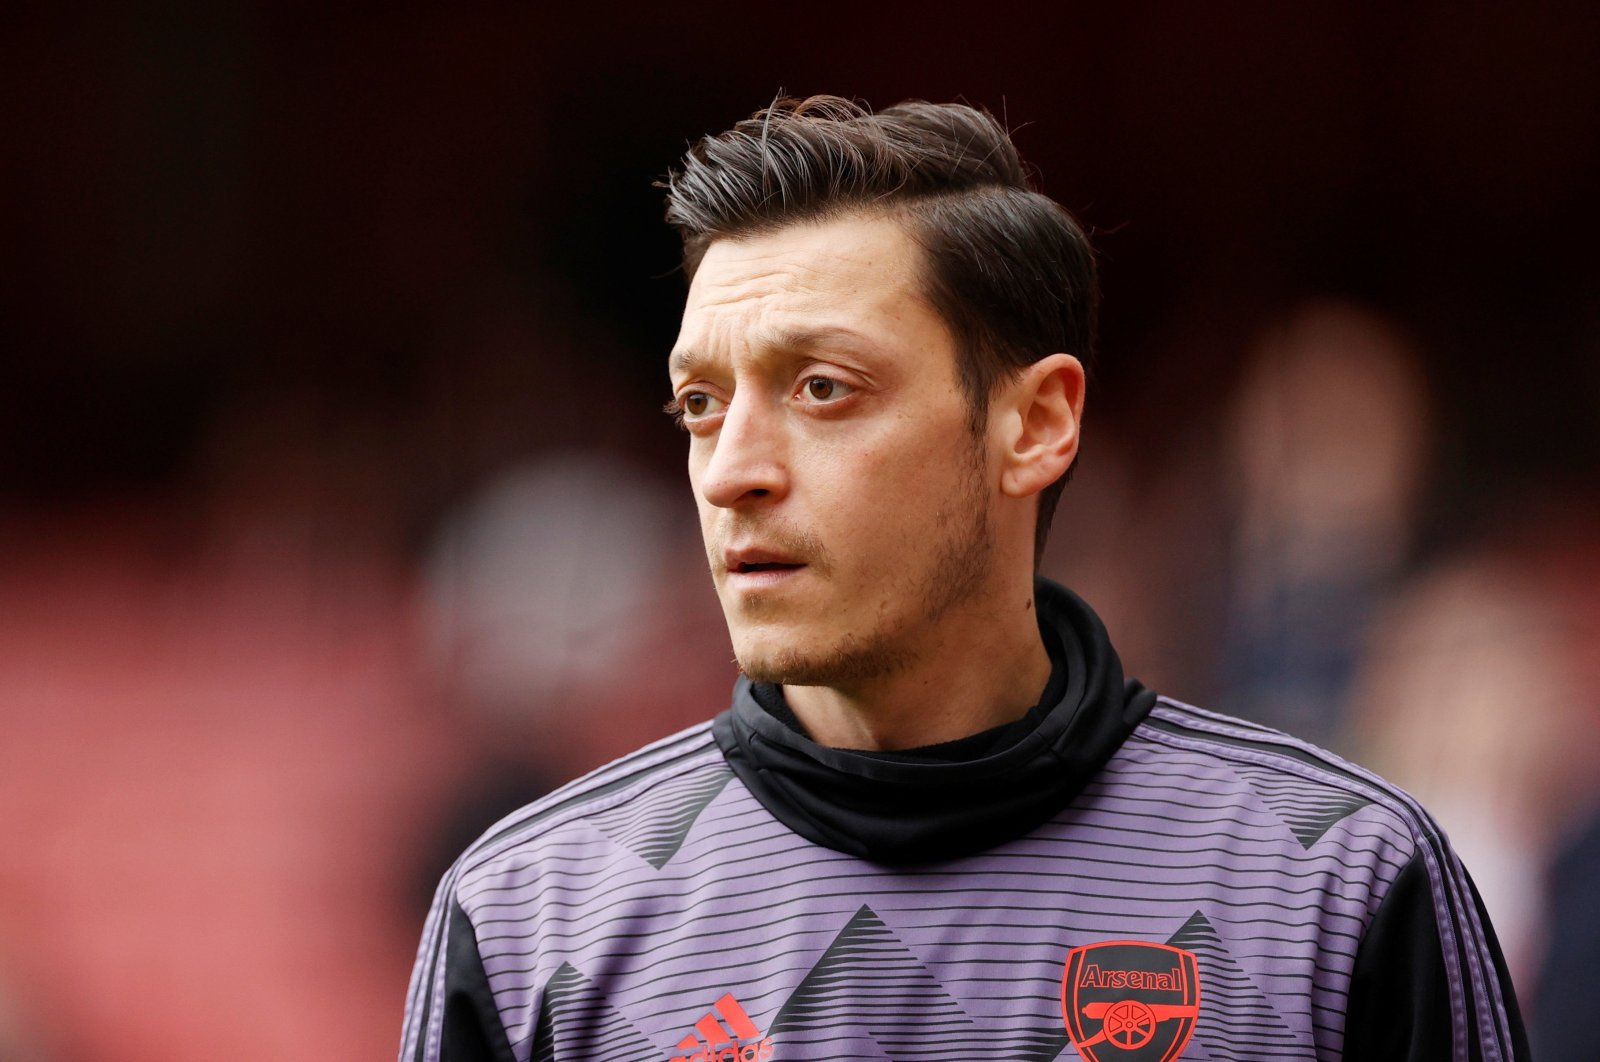 Arsenal's Mesut Özil during the warm-up before a match between Arsenal and West Ham United, Emirates Stadium, London, March 7, 2020. (Reuters Photo)